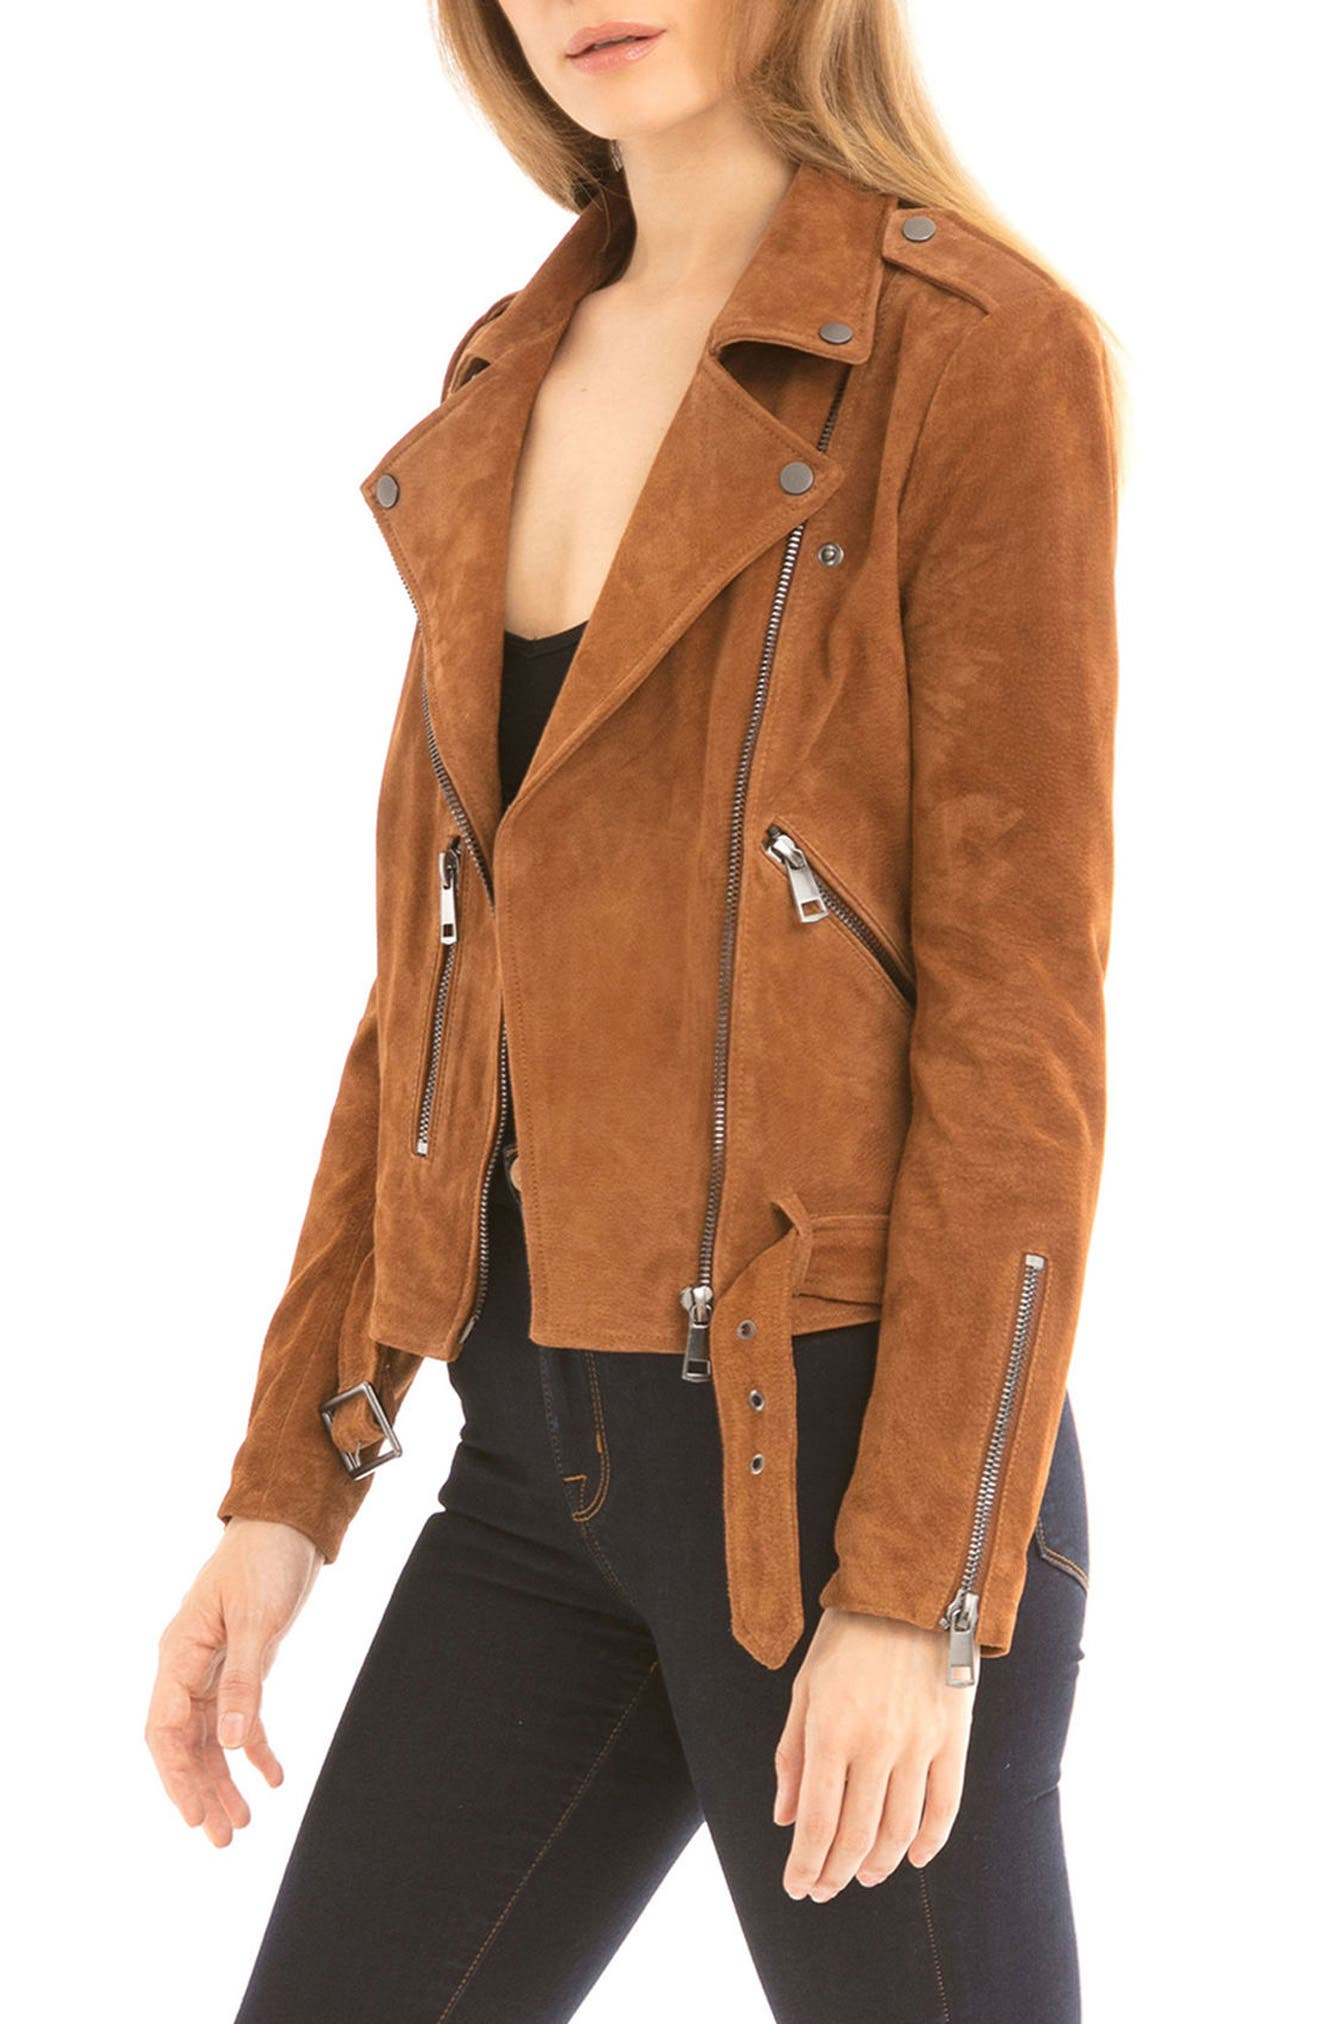 NYC  Suede Jacket,                             Alternate thumbnail 4, color,                             200